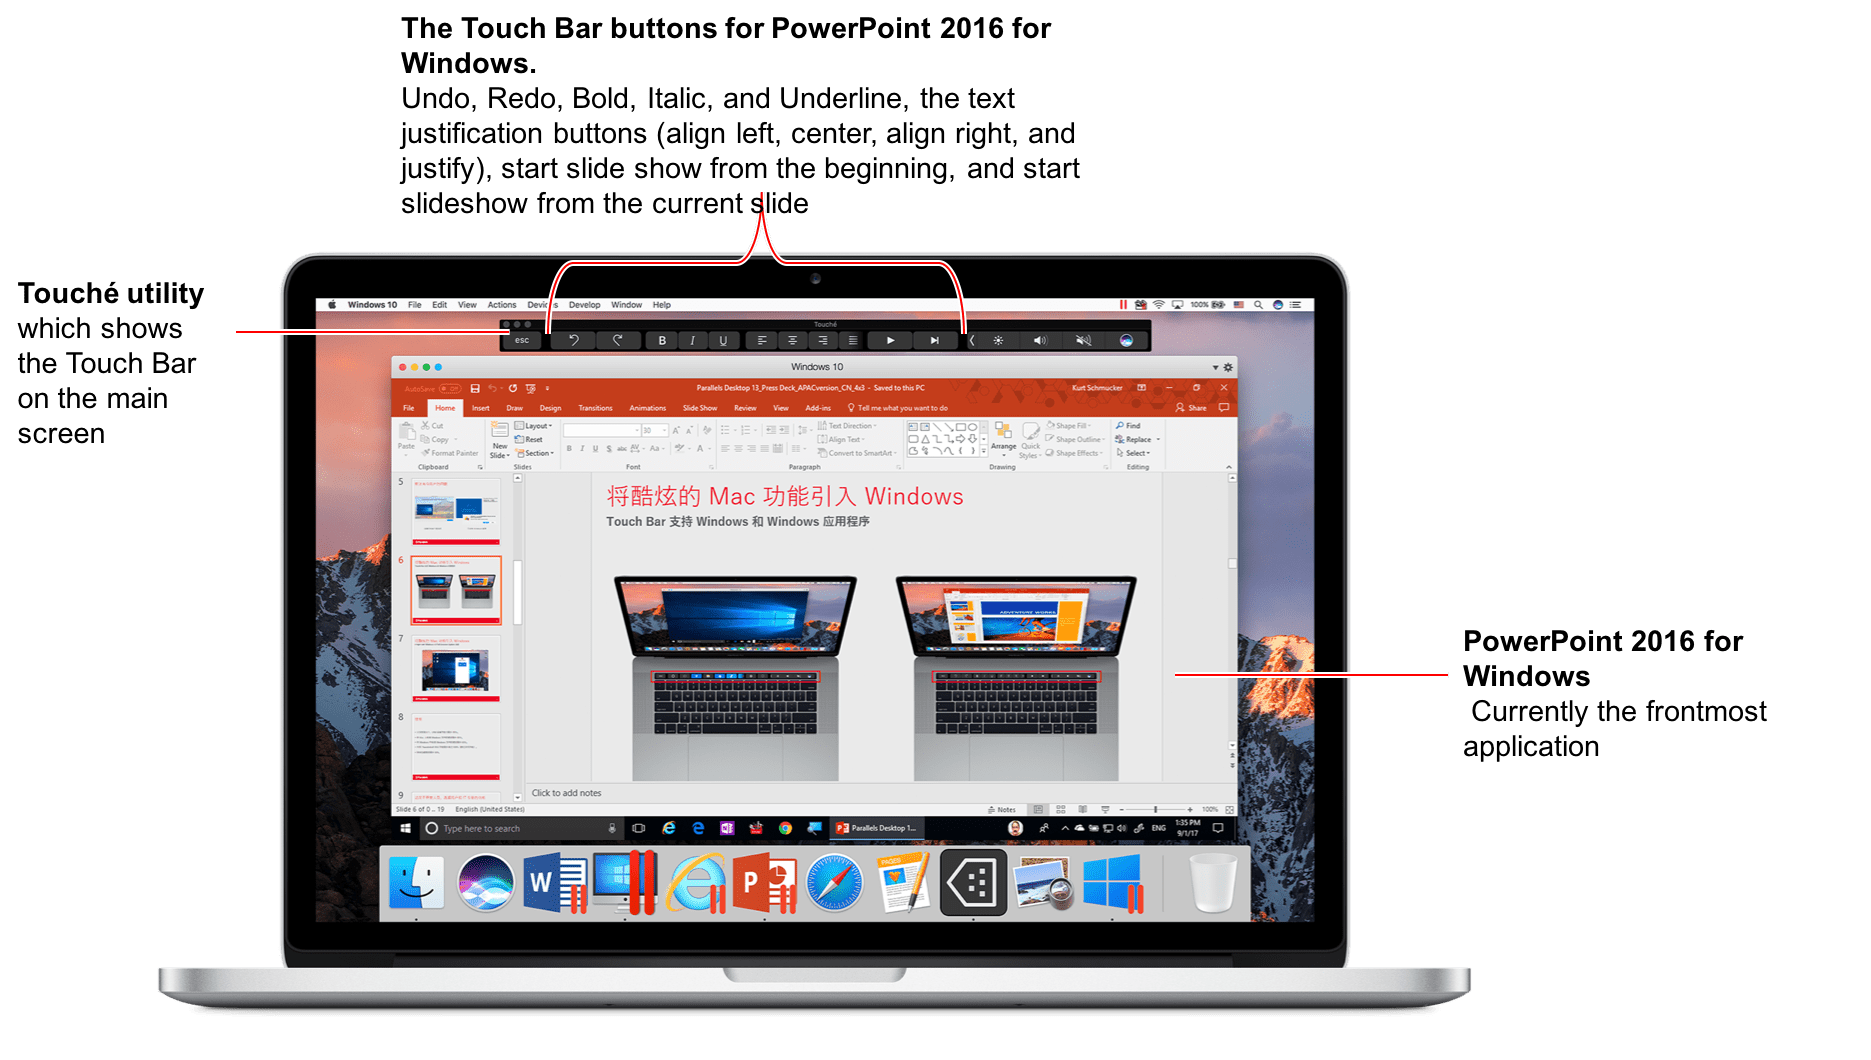 Touch bar support in outlook for mac